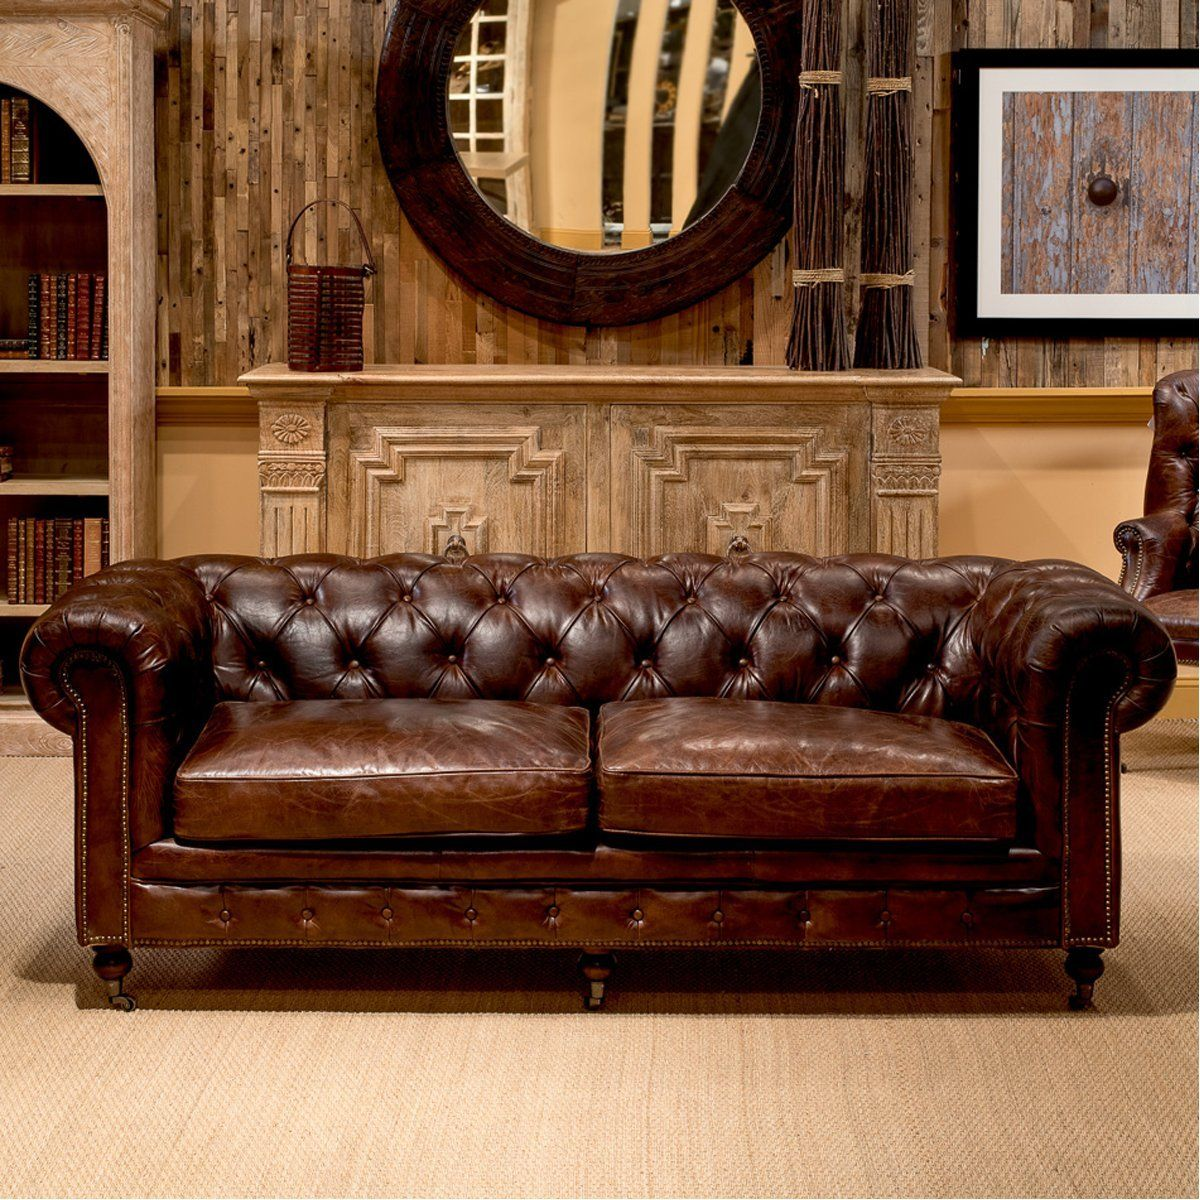 Tufted Top Grain Leather And Generous Traditional Styling Are Invitations To S Chesterfield Sofa Living Room Vintage Sofa Leather Chesterfield Sofa